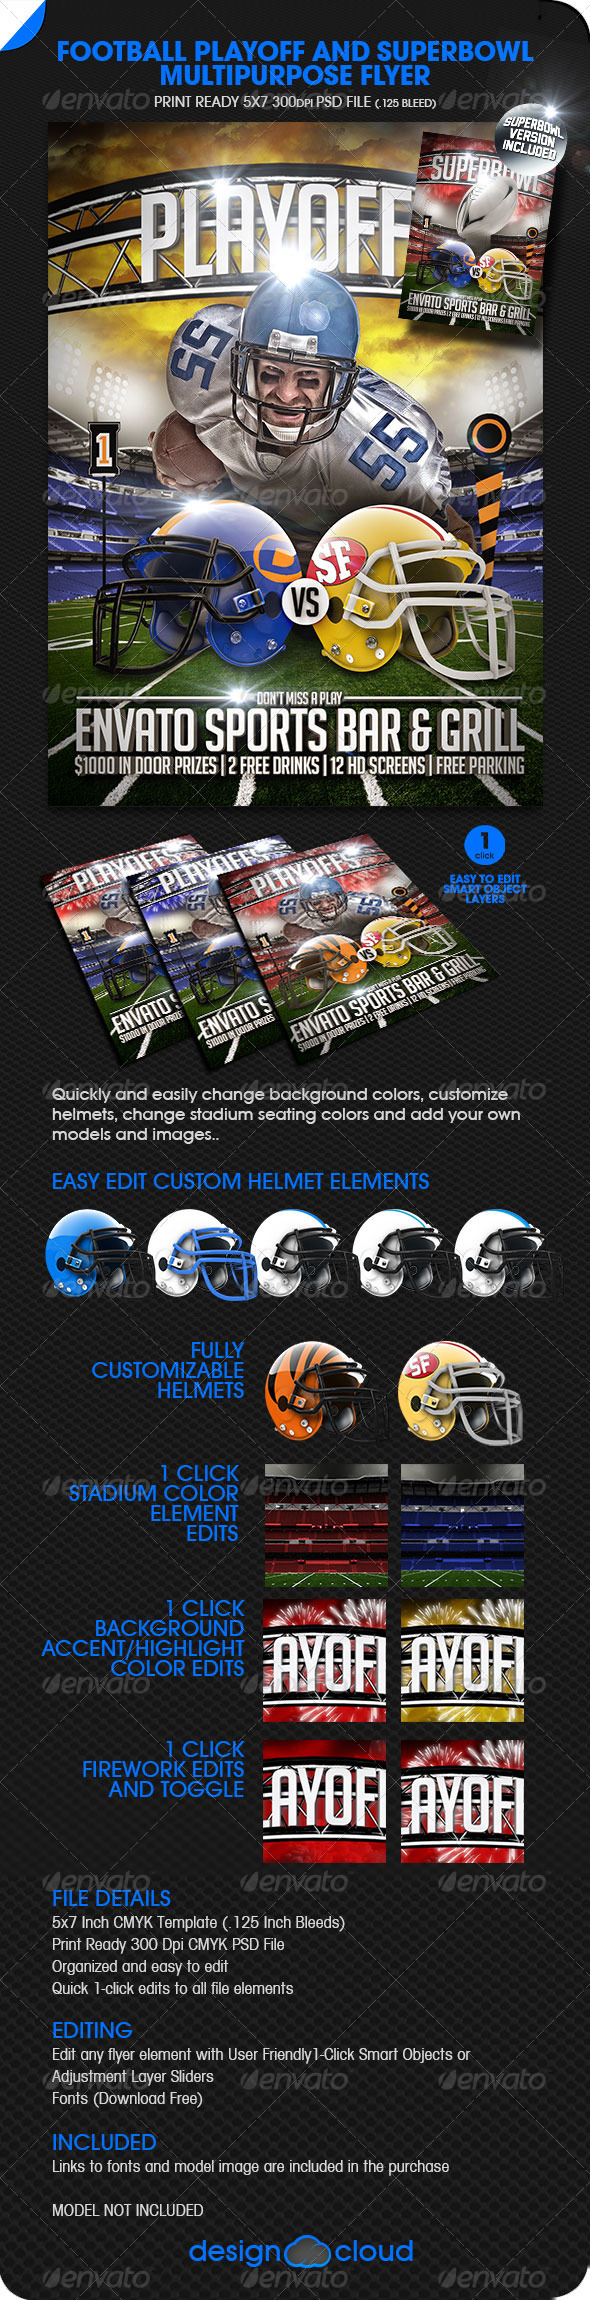 GraphicRiver Football Playoff and Superbowl Flyer 6392168